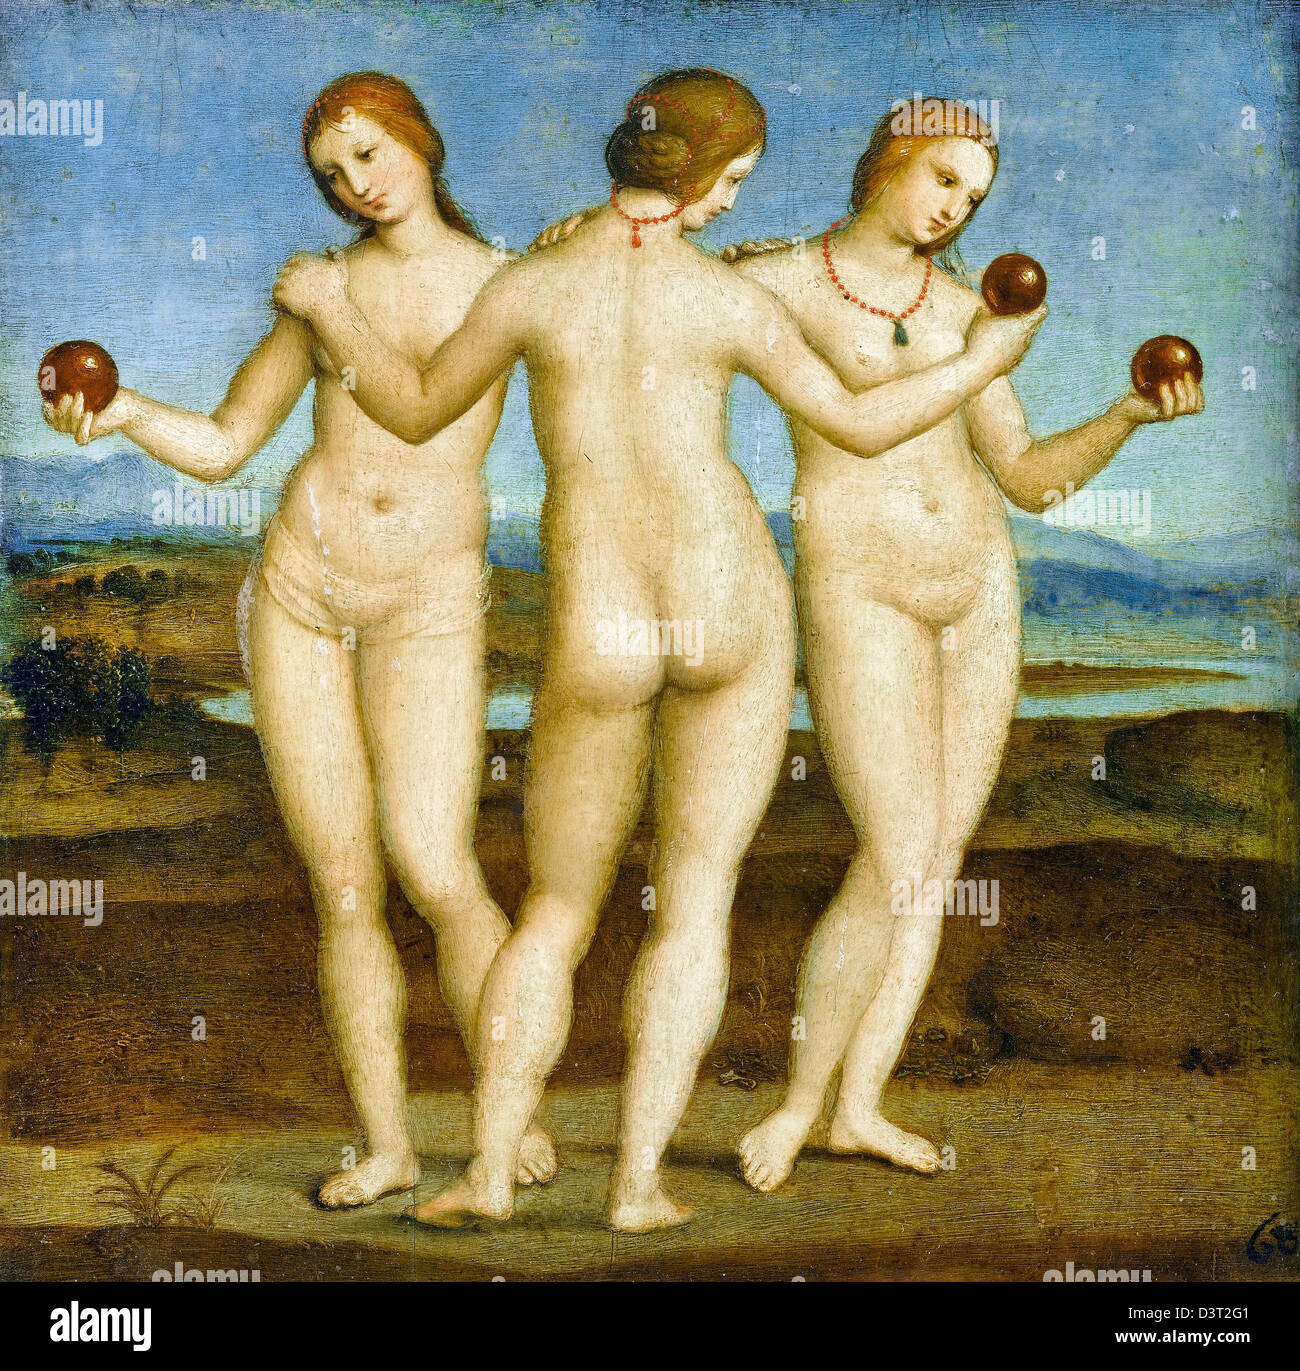 Raphael, The Three Graces. 1504-05 Oil on panel. Musée Condé, Chantilly - Stock Image